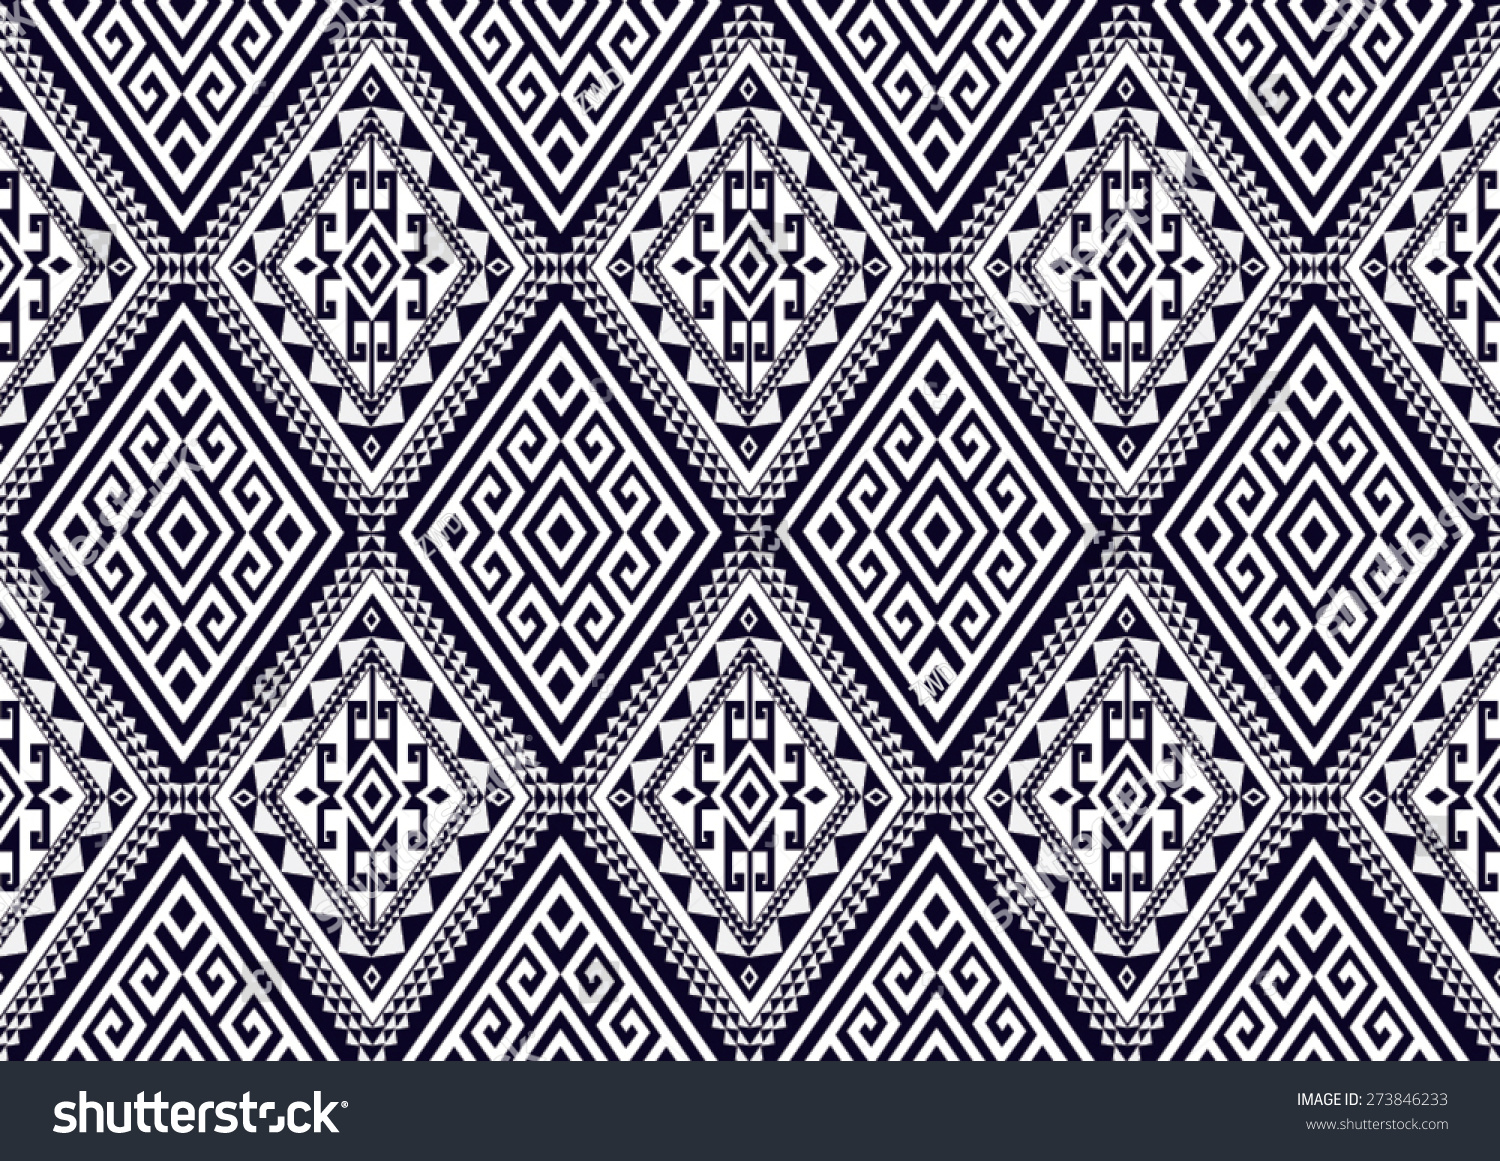 Abstract ethnic geometric pattern design for background or wallpaper